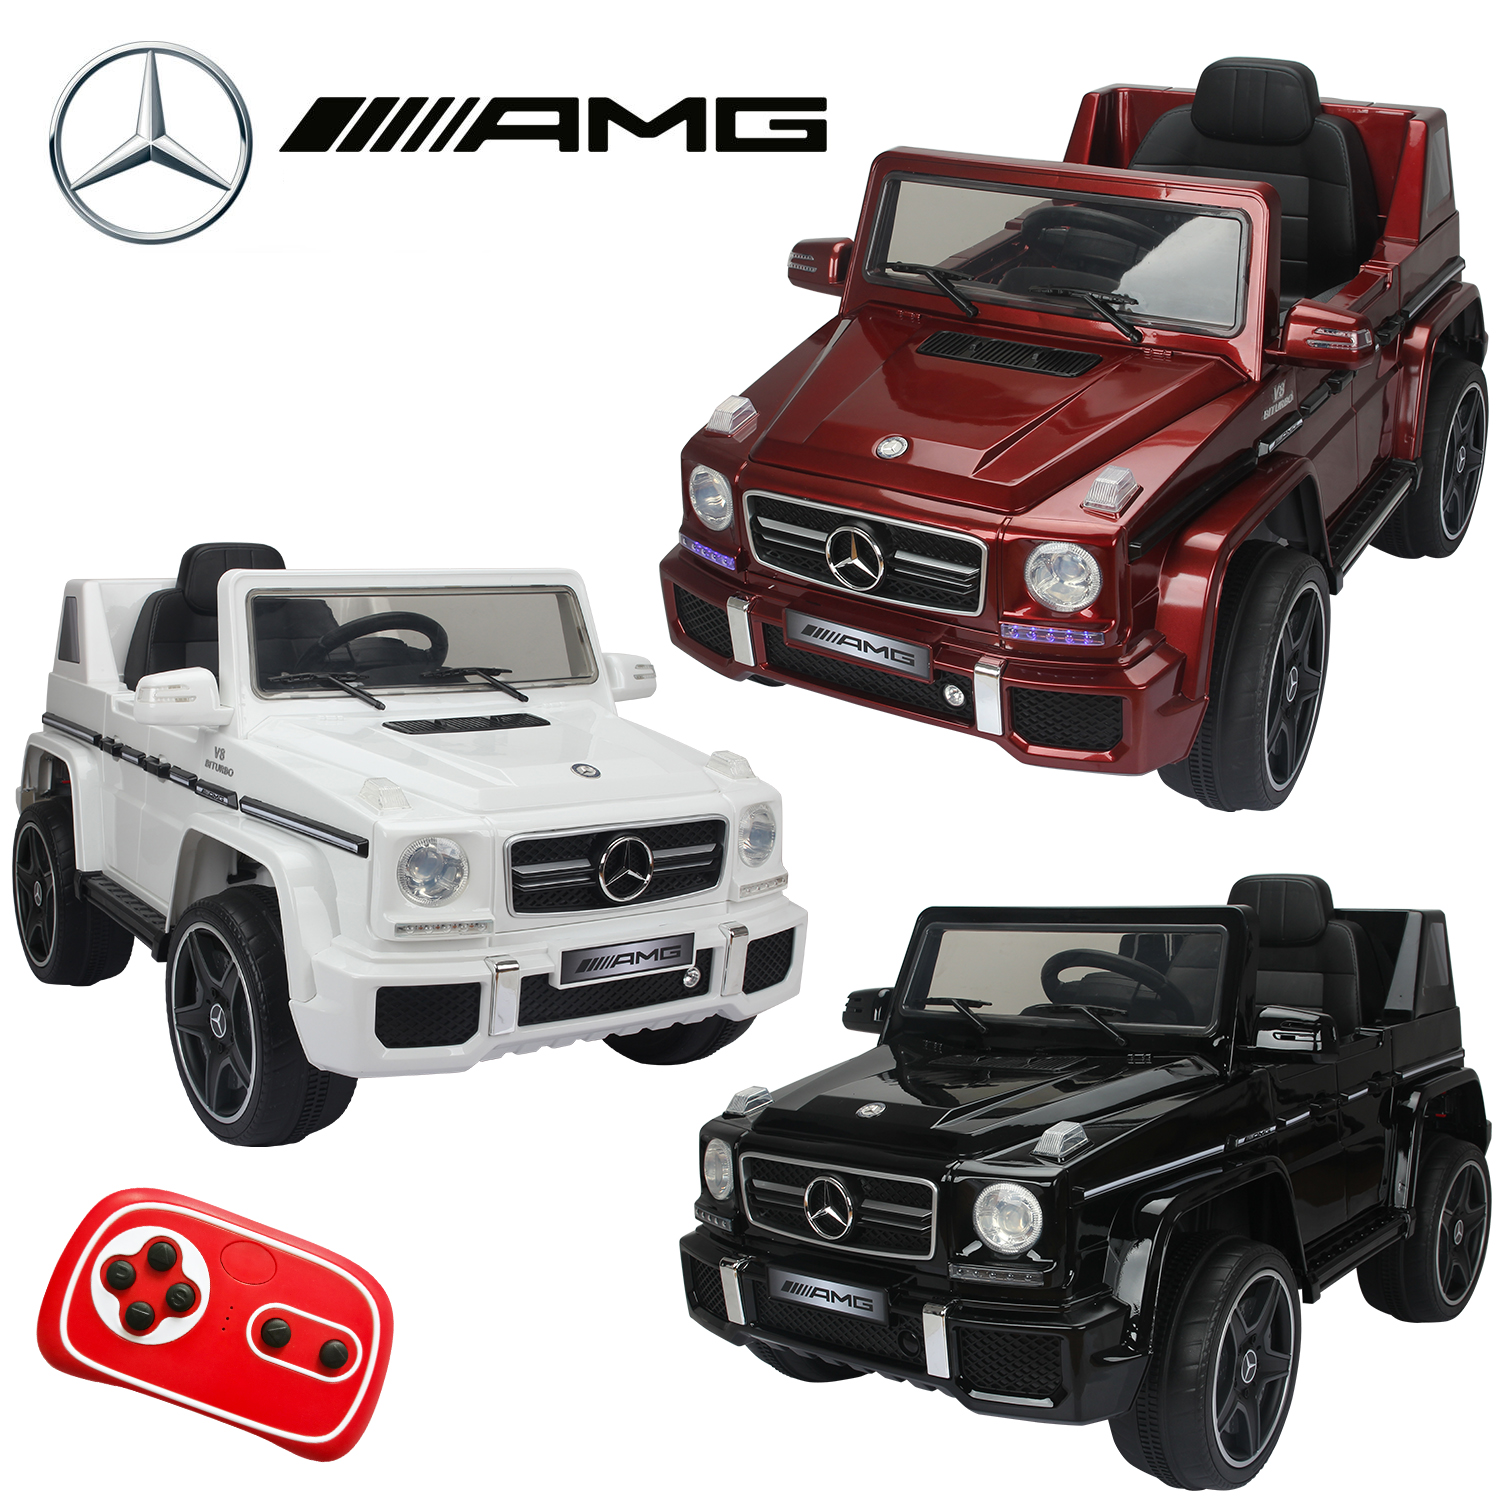 Details about MERCEDES BENZ G63 AMG 12V KIDS RIDE ON JEEP REMOTE CONTROL  CAR BIRTHDAY GIFT